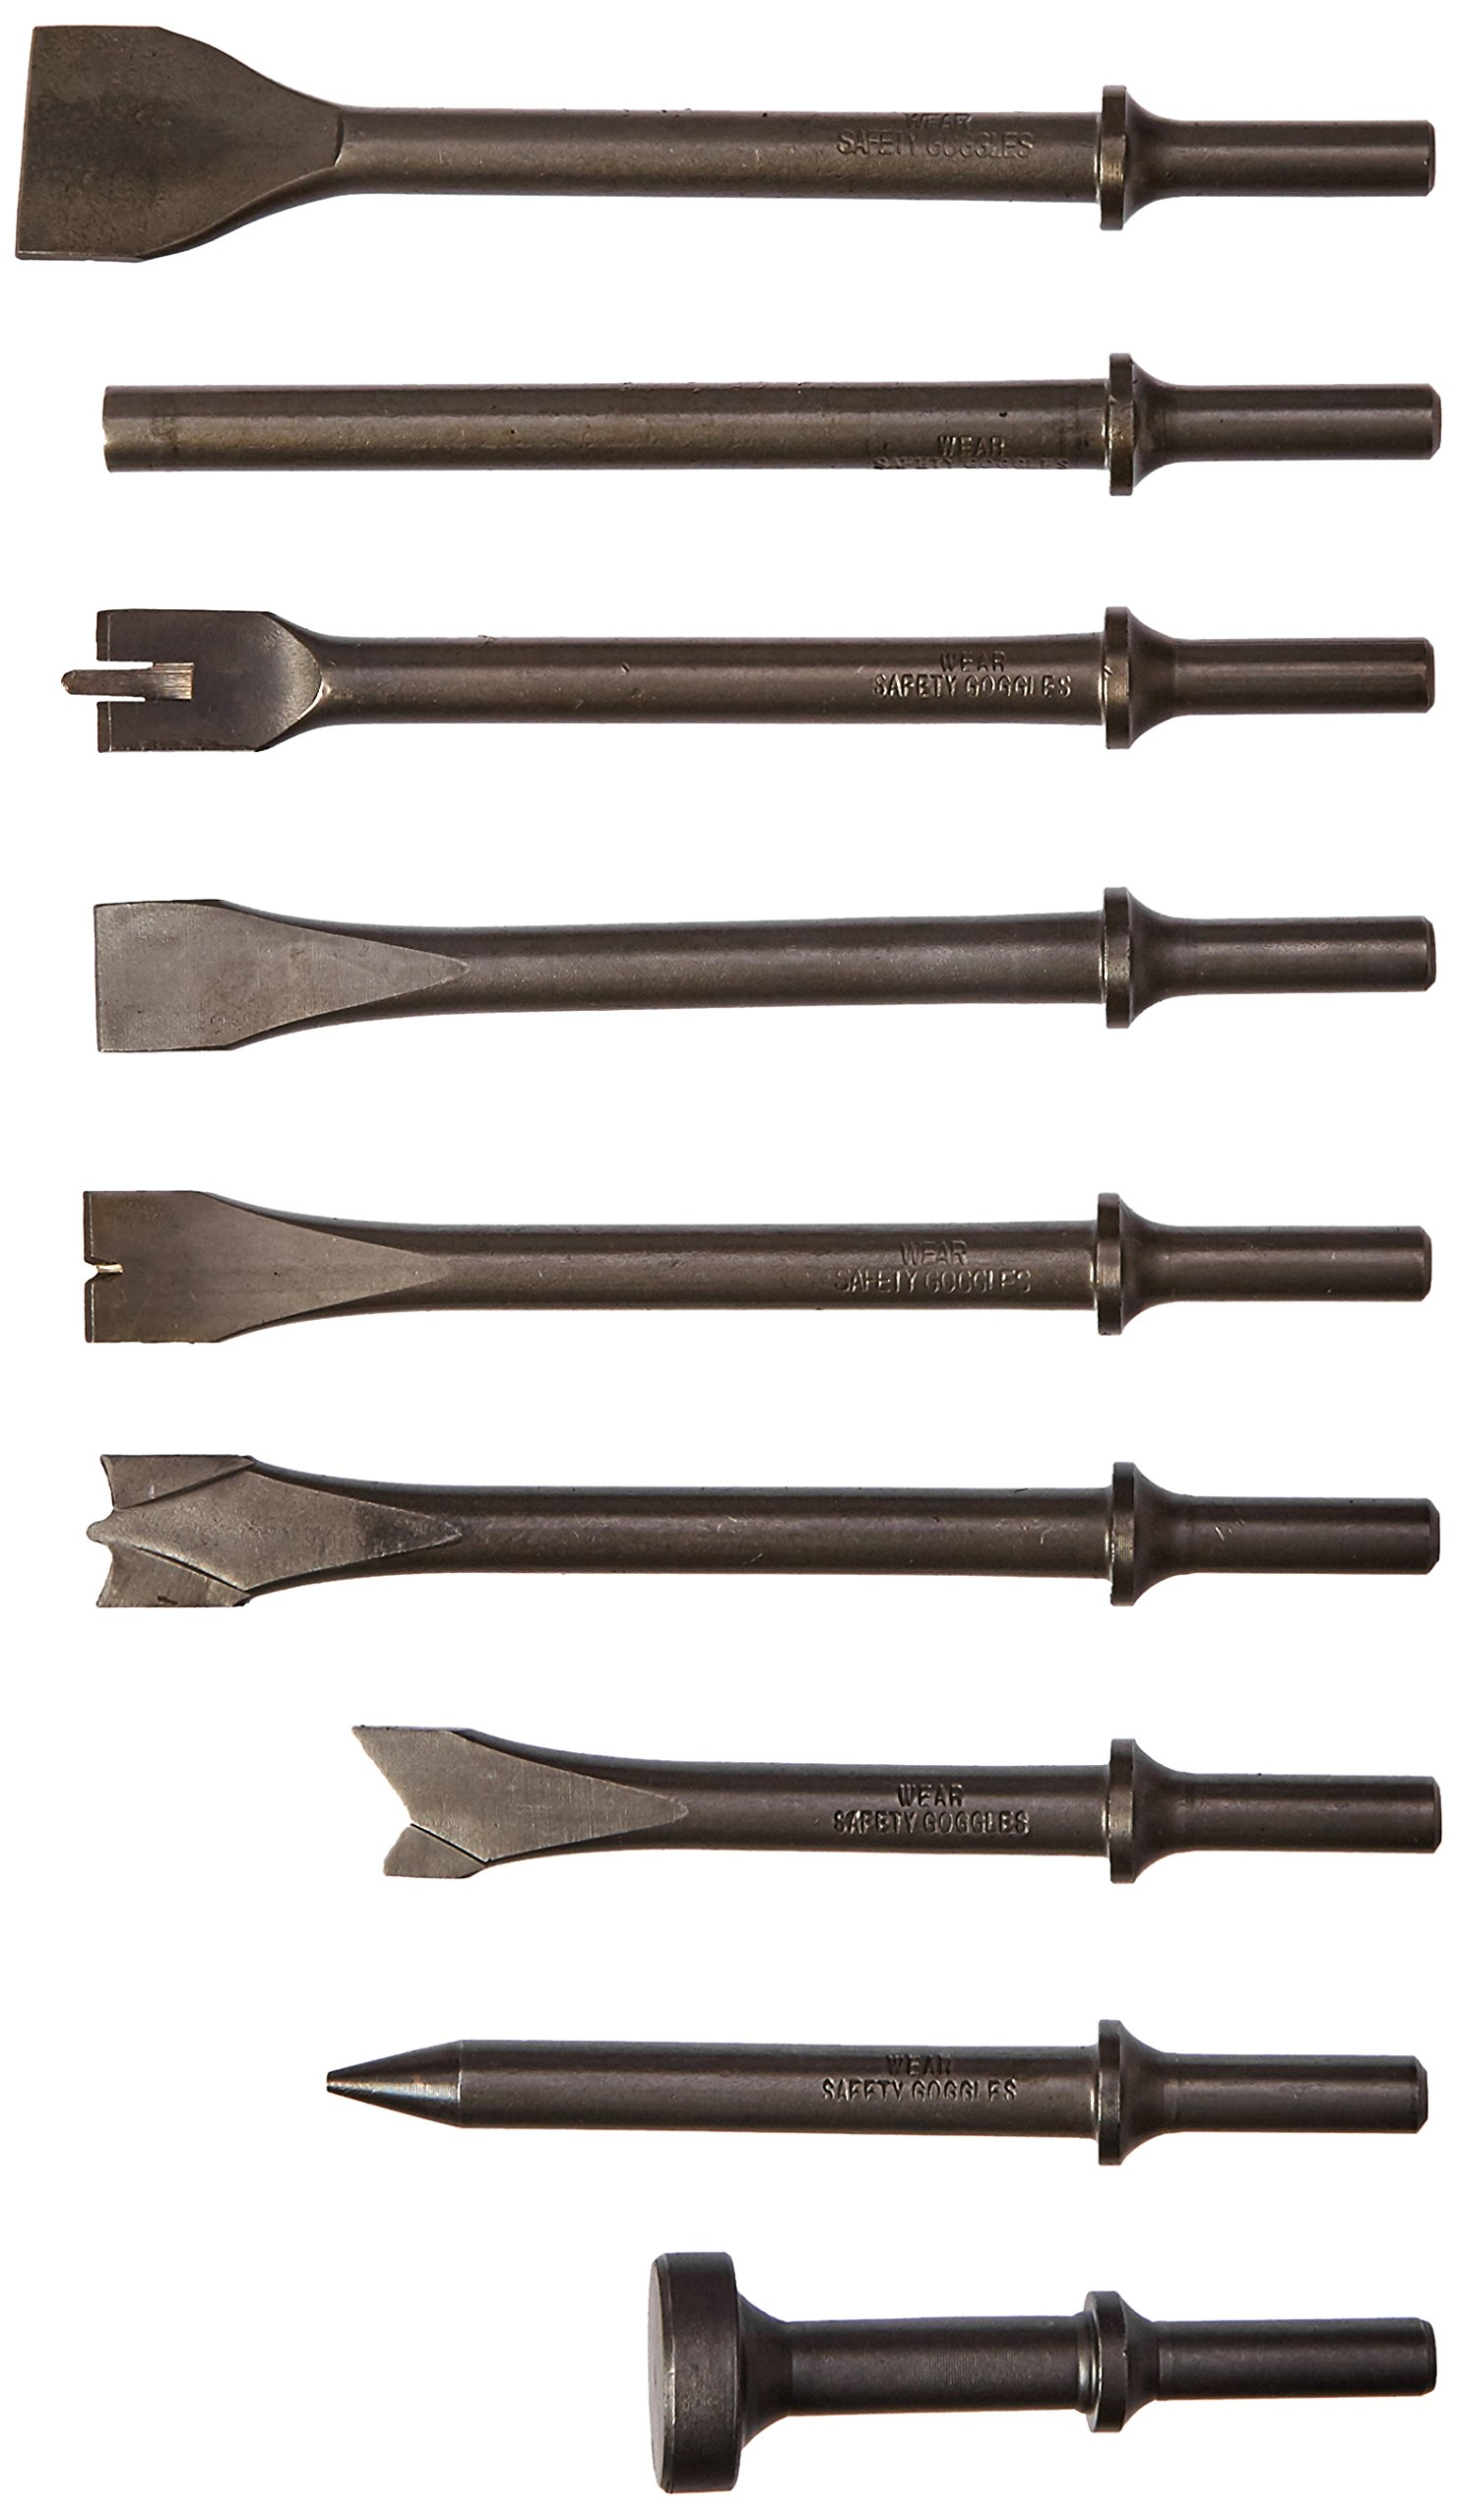 ATD ATD-5730 Chisel Set by ATD